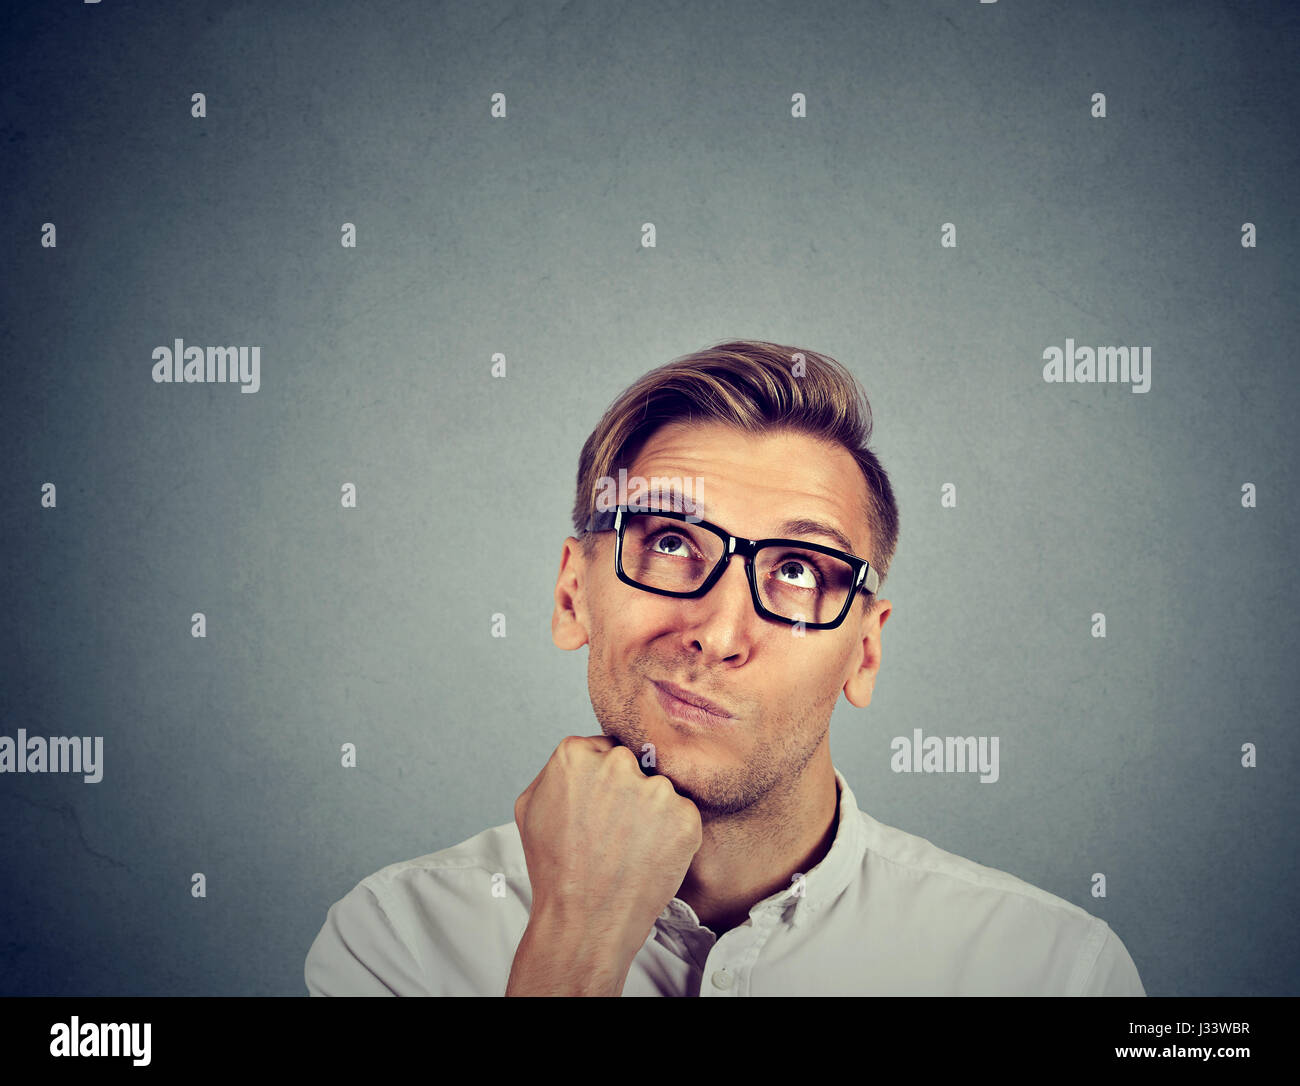 confused skeptical man thinking looking up isolated on gray background with copy space above head. Human face expressions, - Stock Image